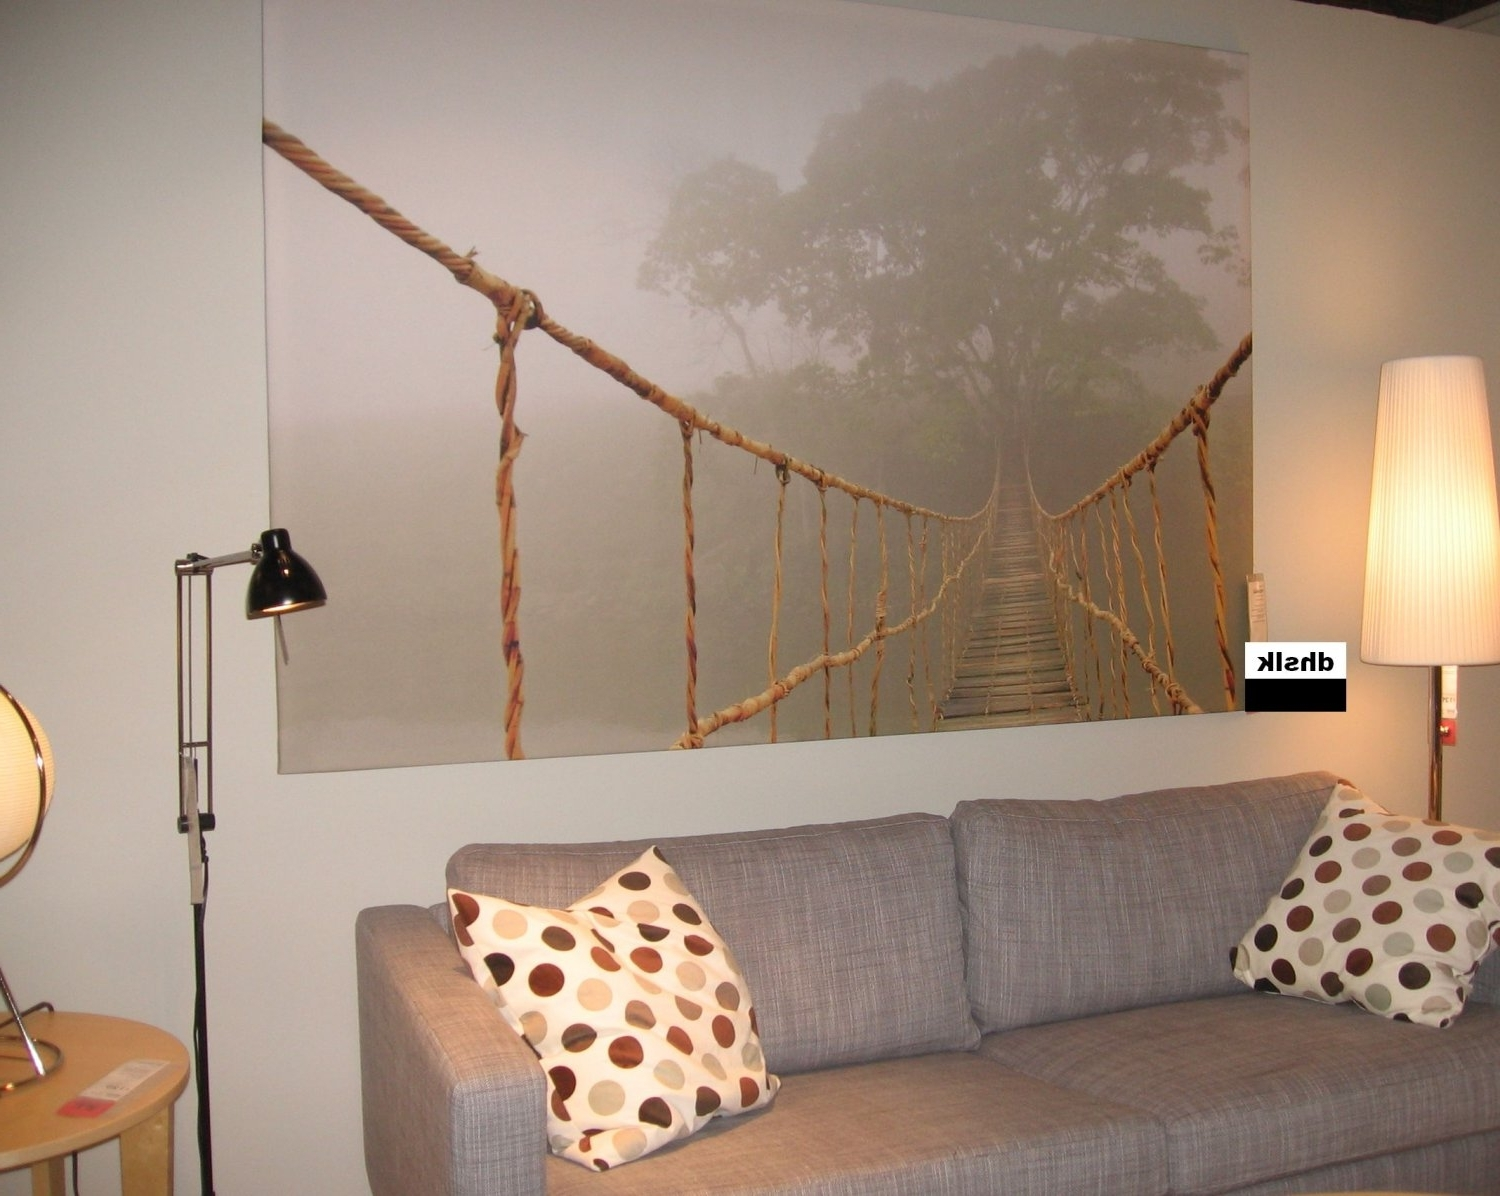 Ikea Canvas Wall Art Intended For Most Up To Date Ikea Premiar Jungle Journey Wall Art Print Huge Canvas Tree Bridge (View 14 of 15)